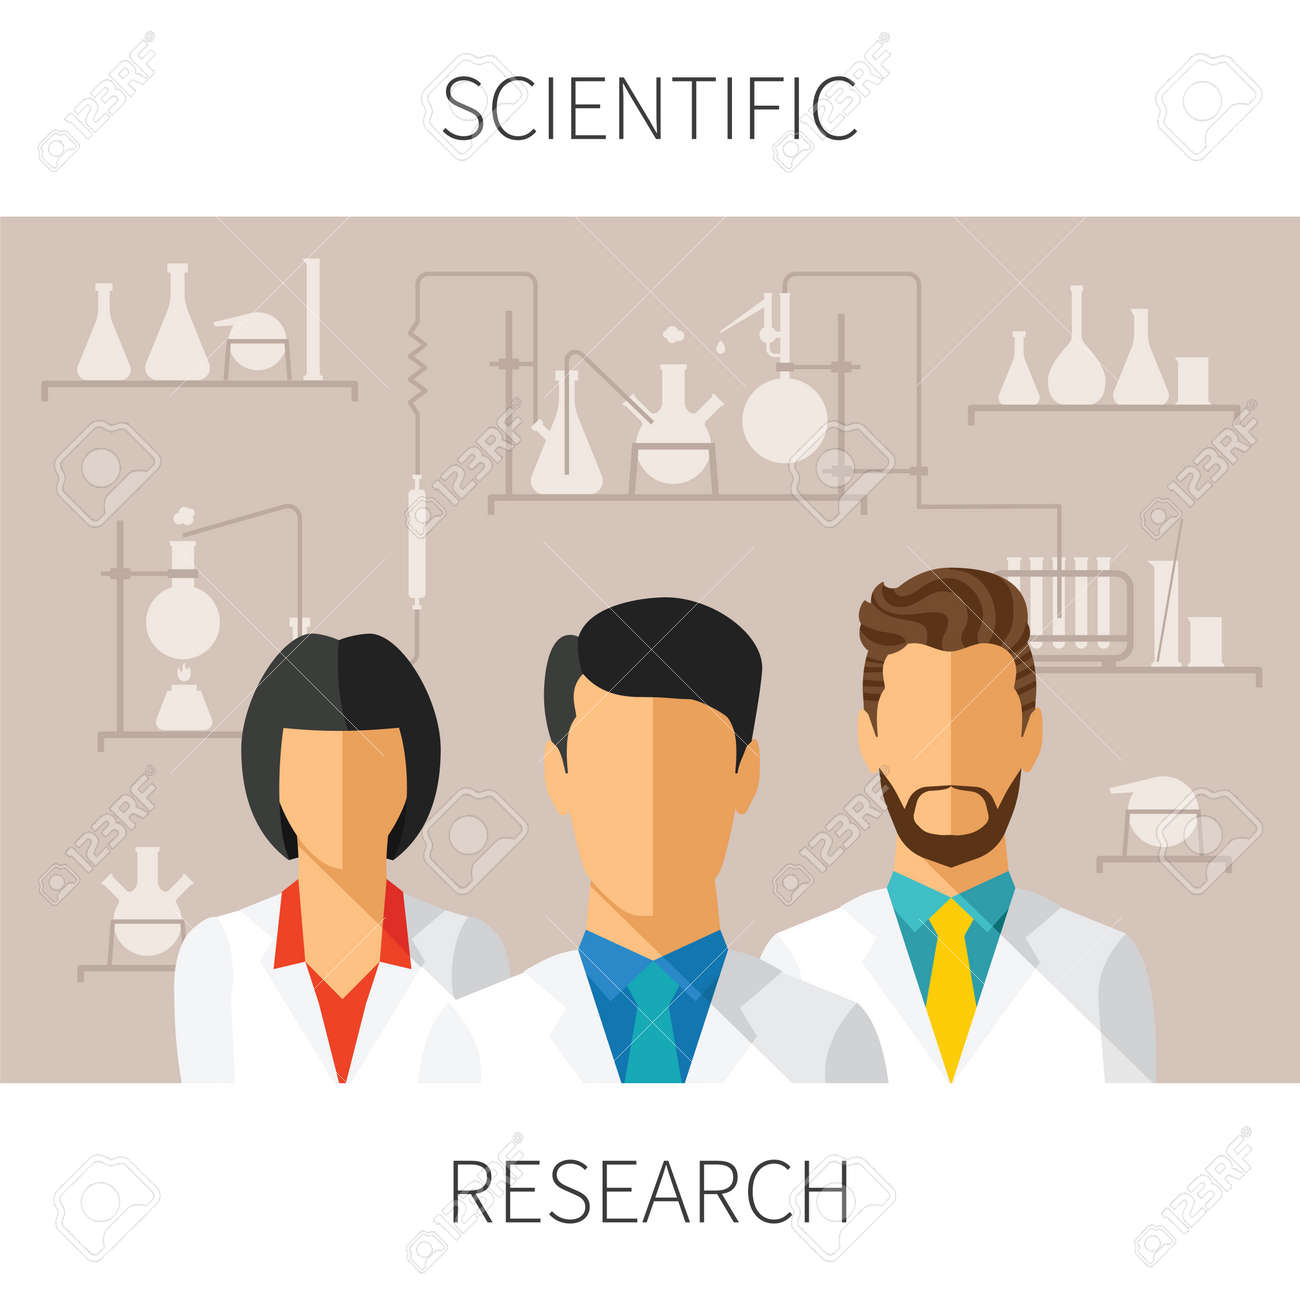 concept illustration of scientific research with scientists in chemical laboratory - 31673803